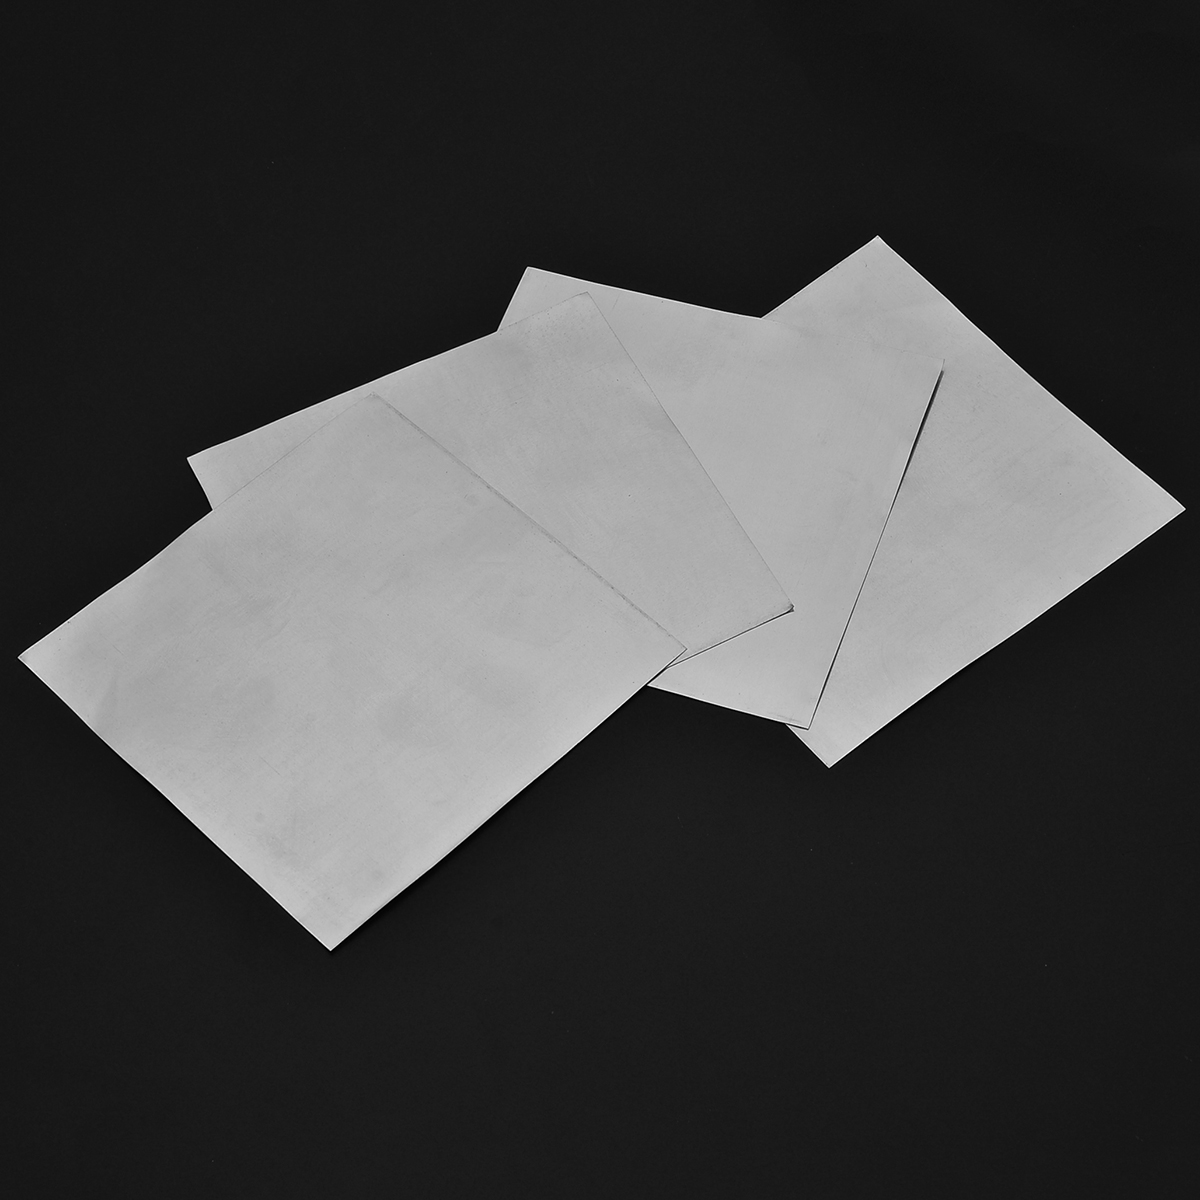 5pcs 99.9% Pure Zinc Sheet Plate 140x140x0.2mm High Purity For Science Lab Tools Set